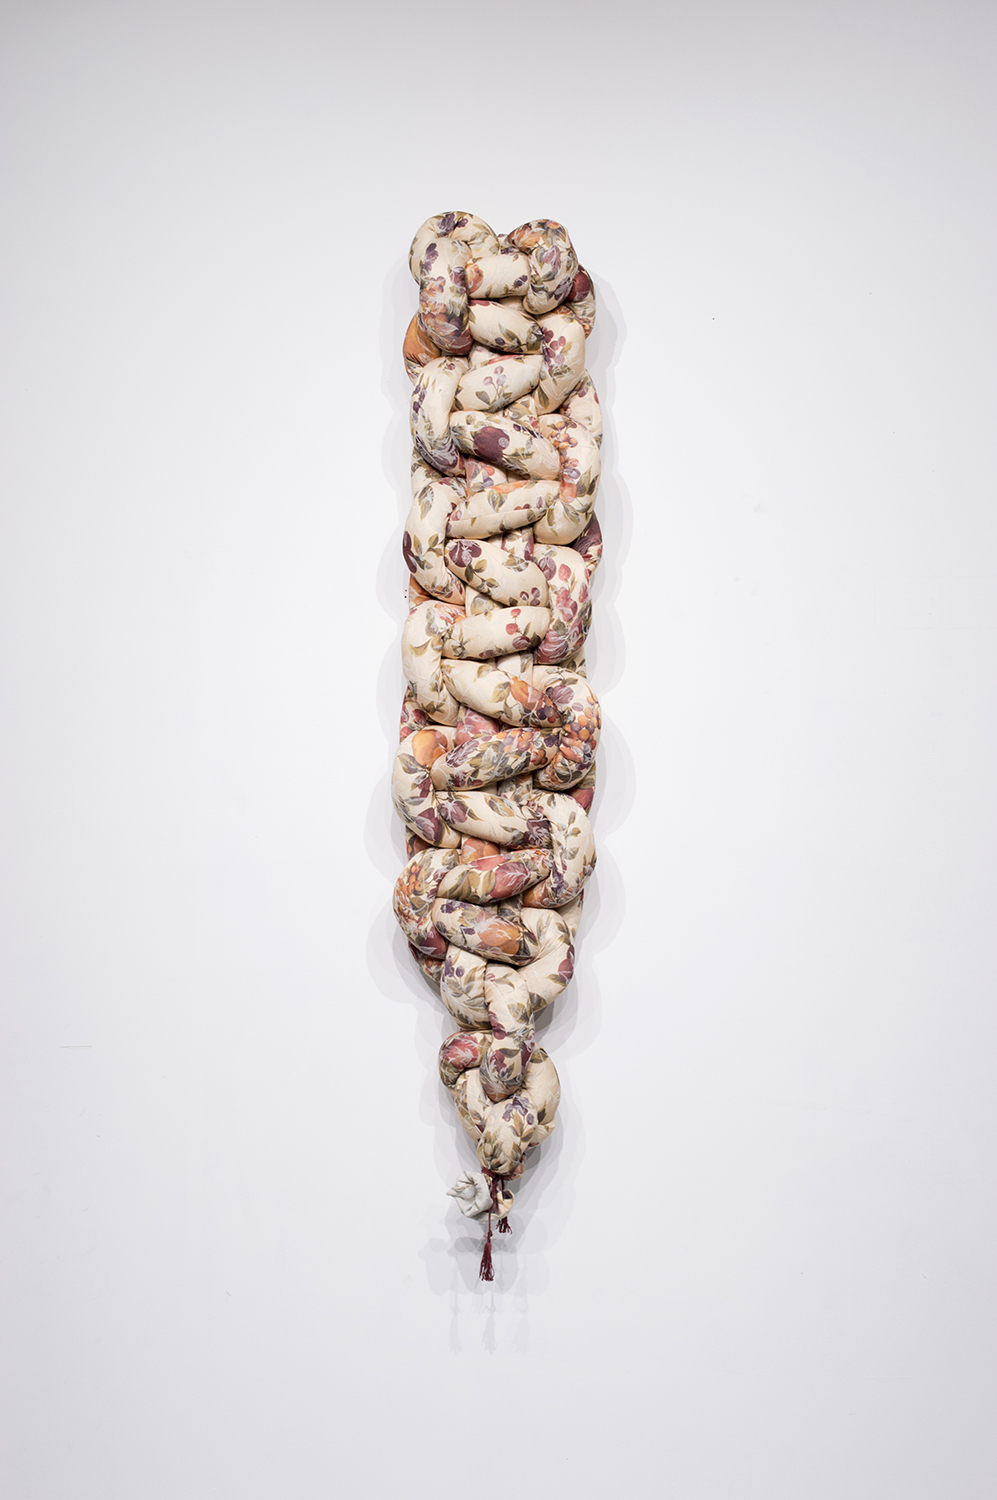 Knots I, 2018, Soft Sculpture, 60 x 12 x 6 inches, $300